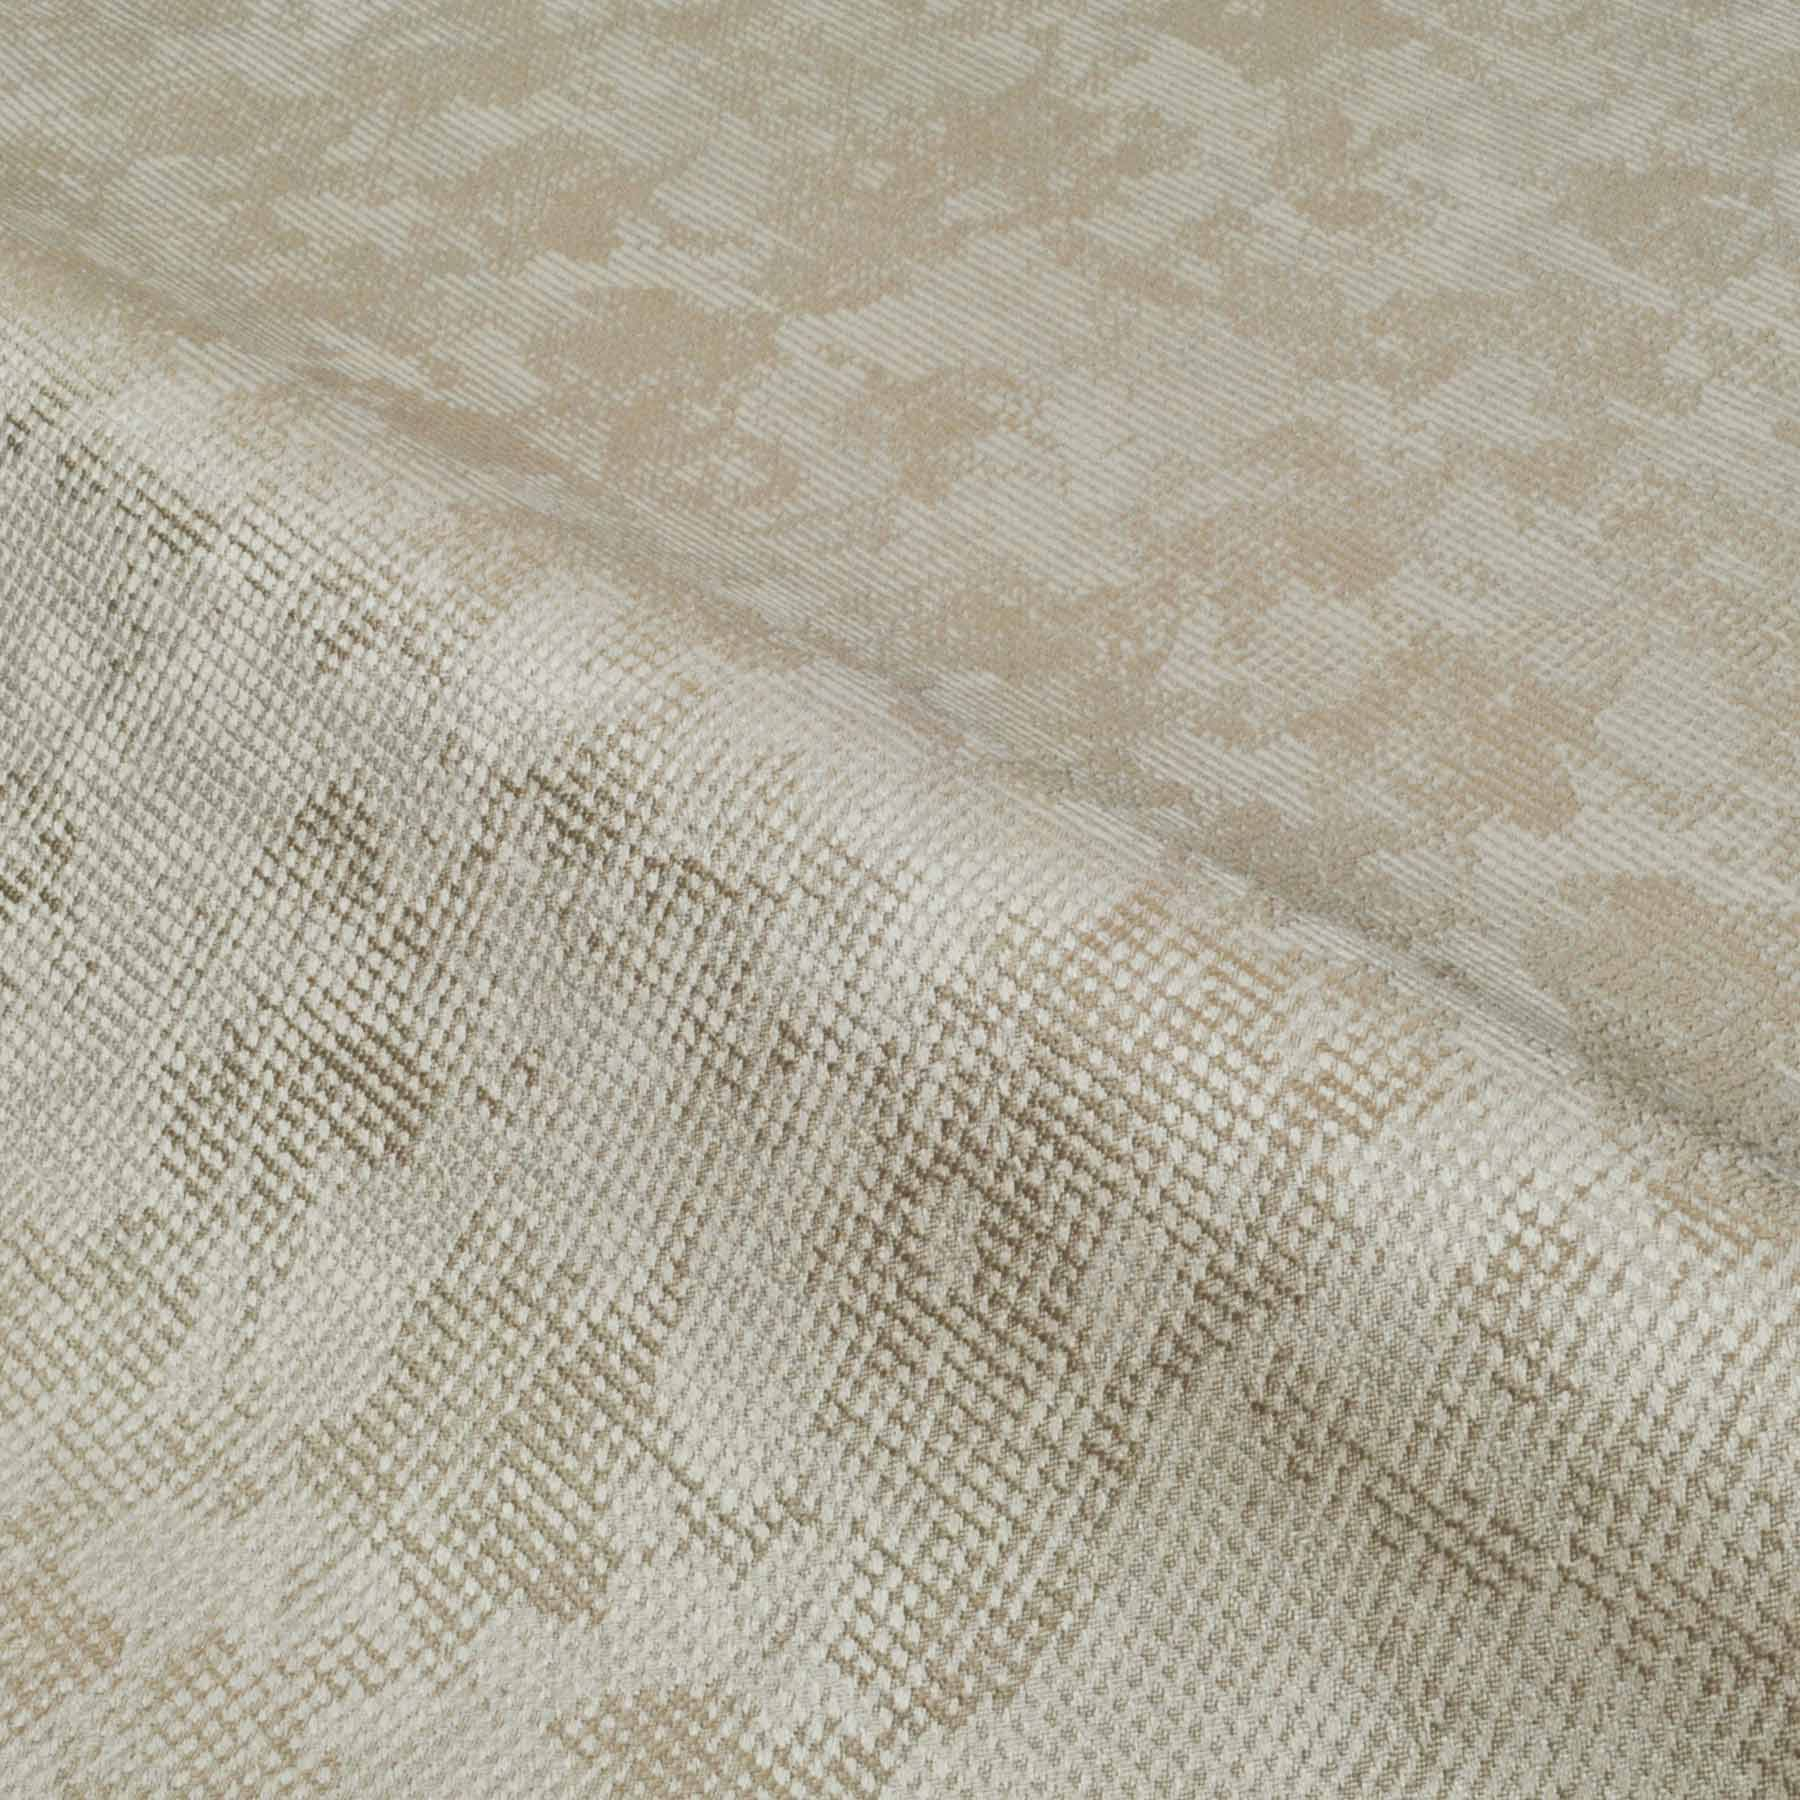 Drapery Fabric HFR OPHIDIAN In LATTE By P/Kaufmann Contract